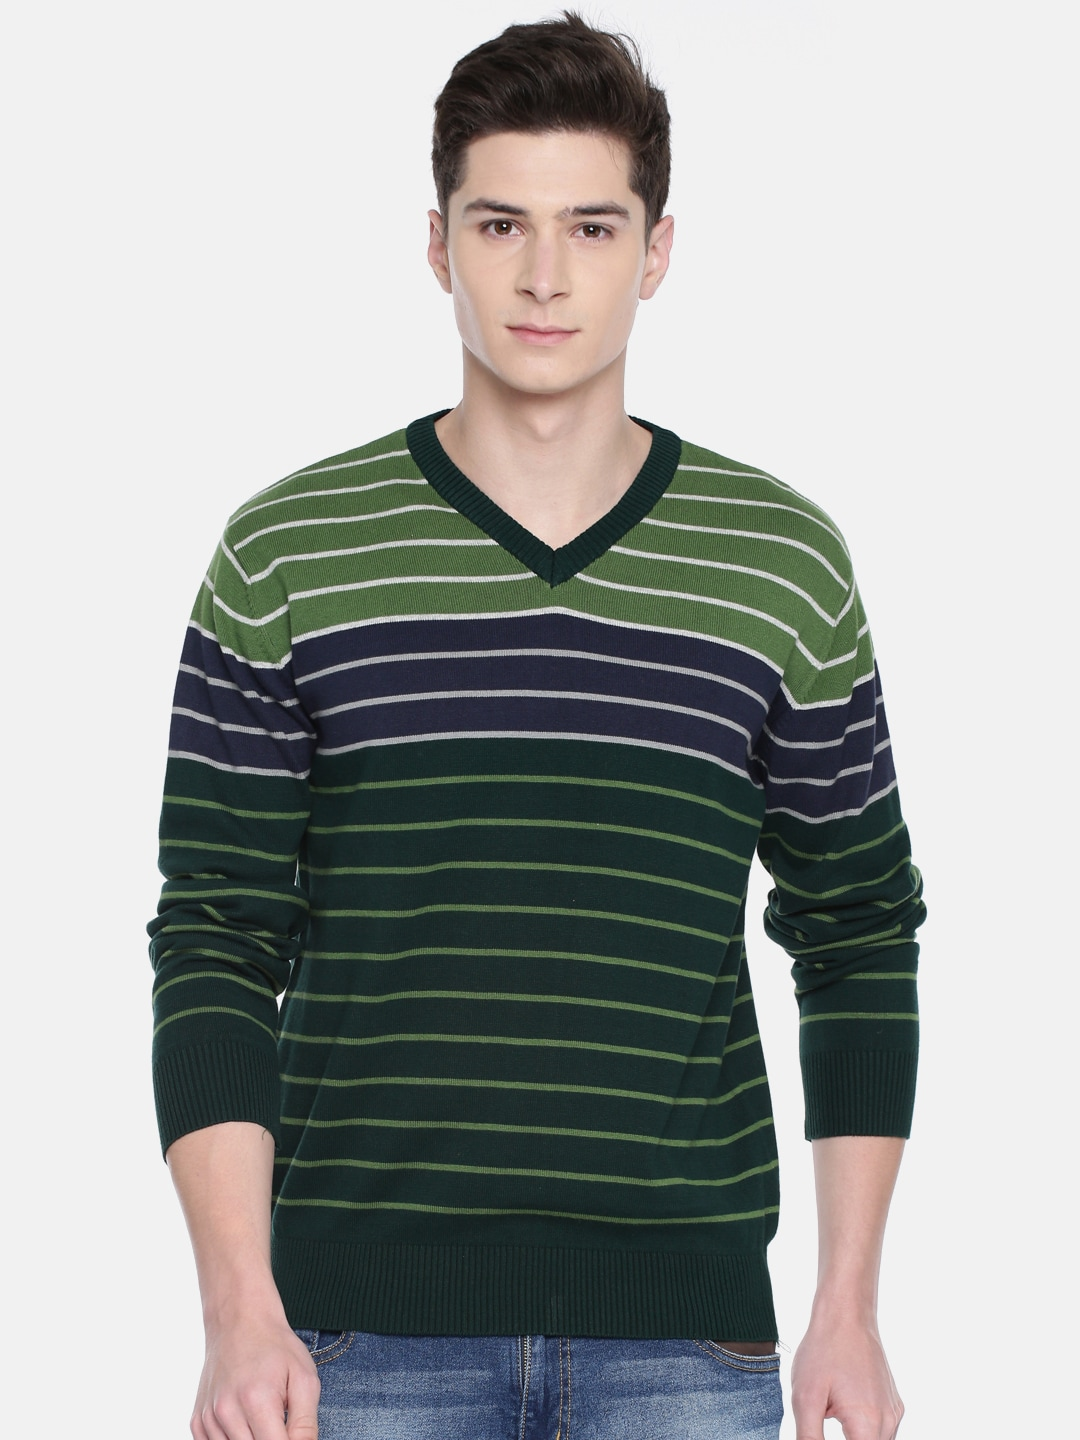 aa3eb025d01 Sweaters for Men - Buy Mens Sweaters